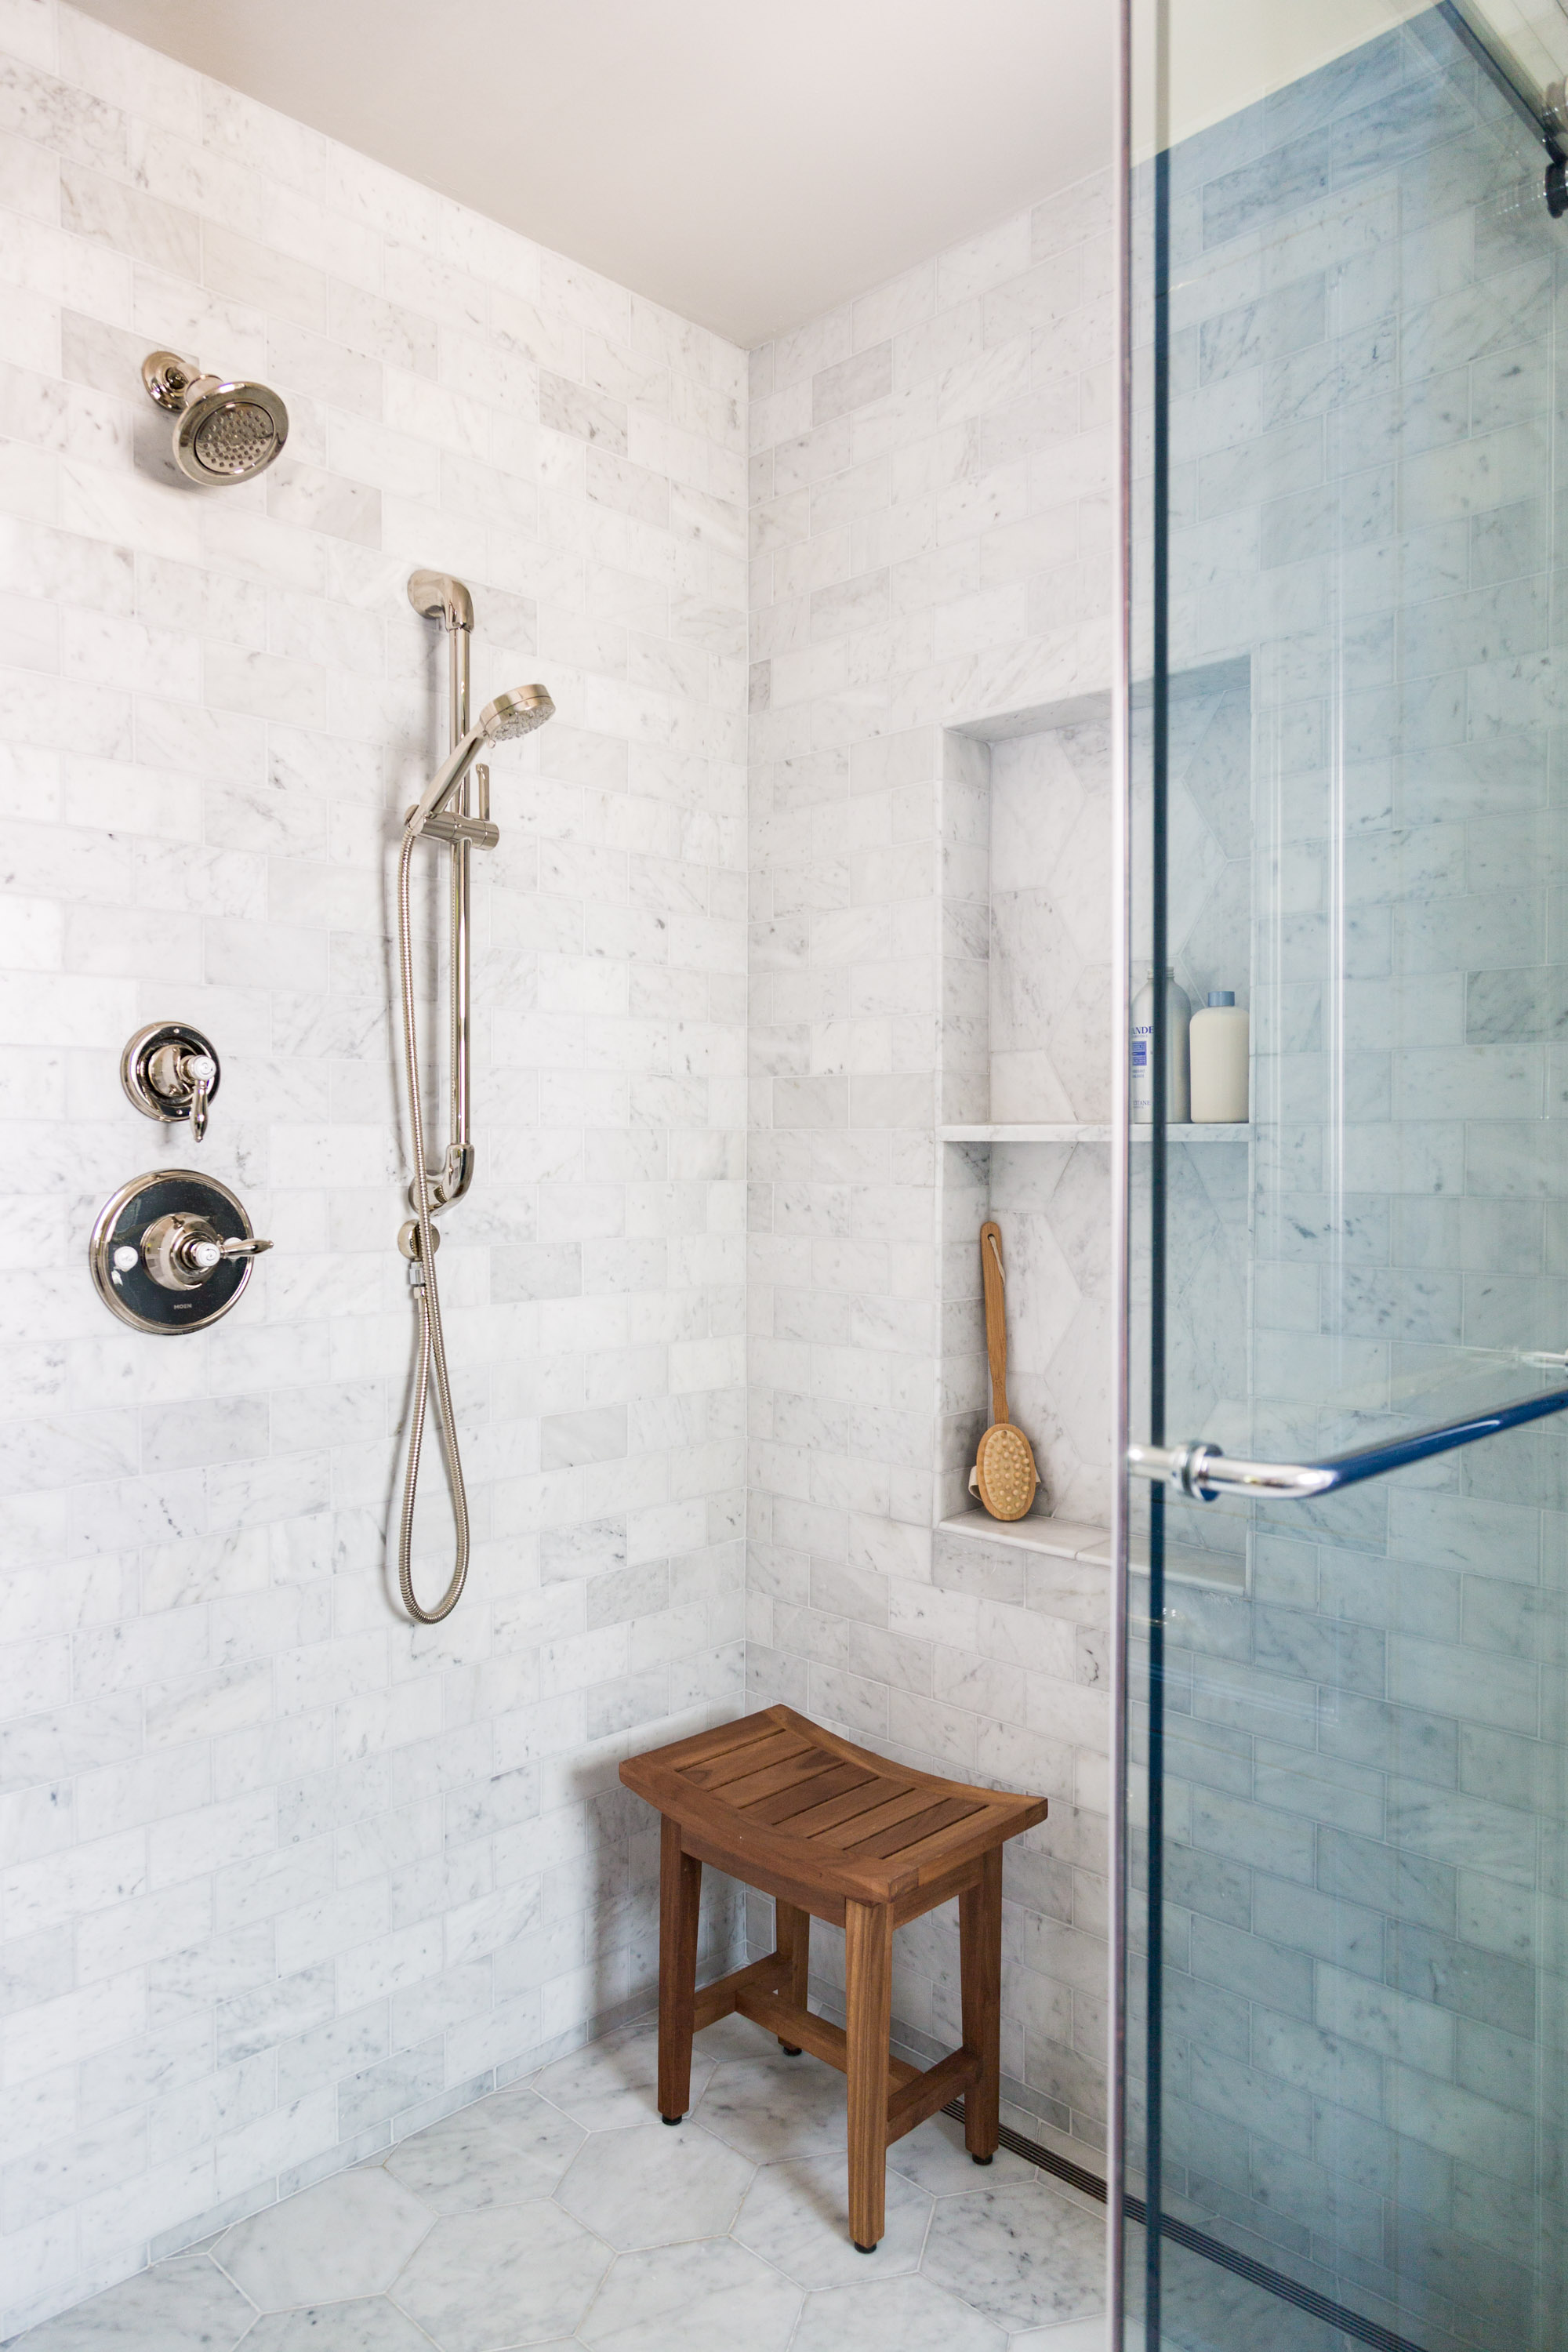 Before and After Master Bath Renovation  - Designer: Carla Aston, Photography by Tori Aston